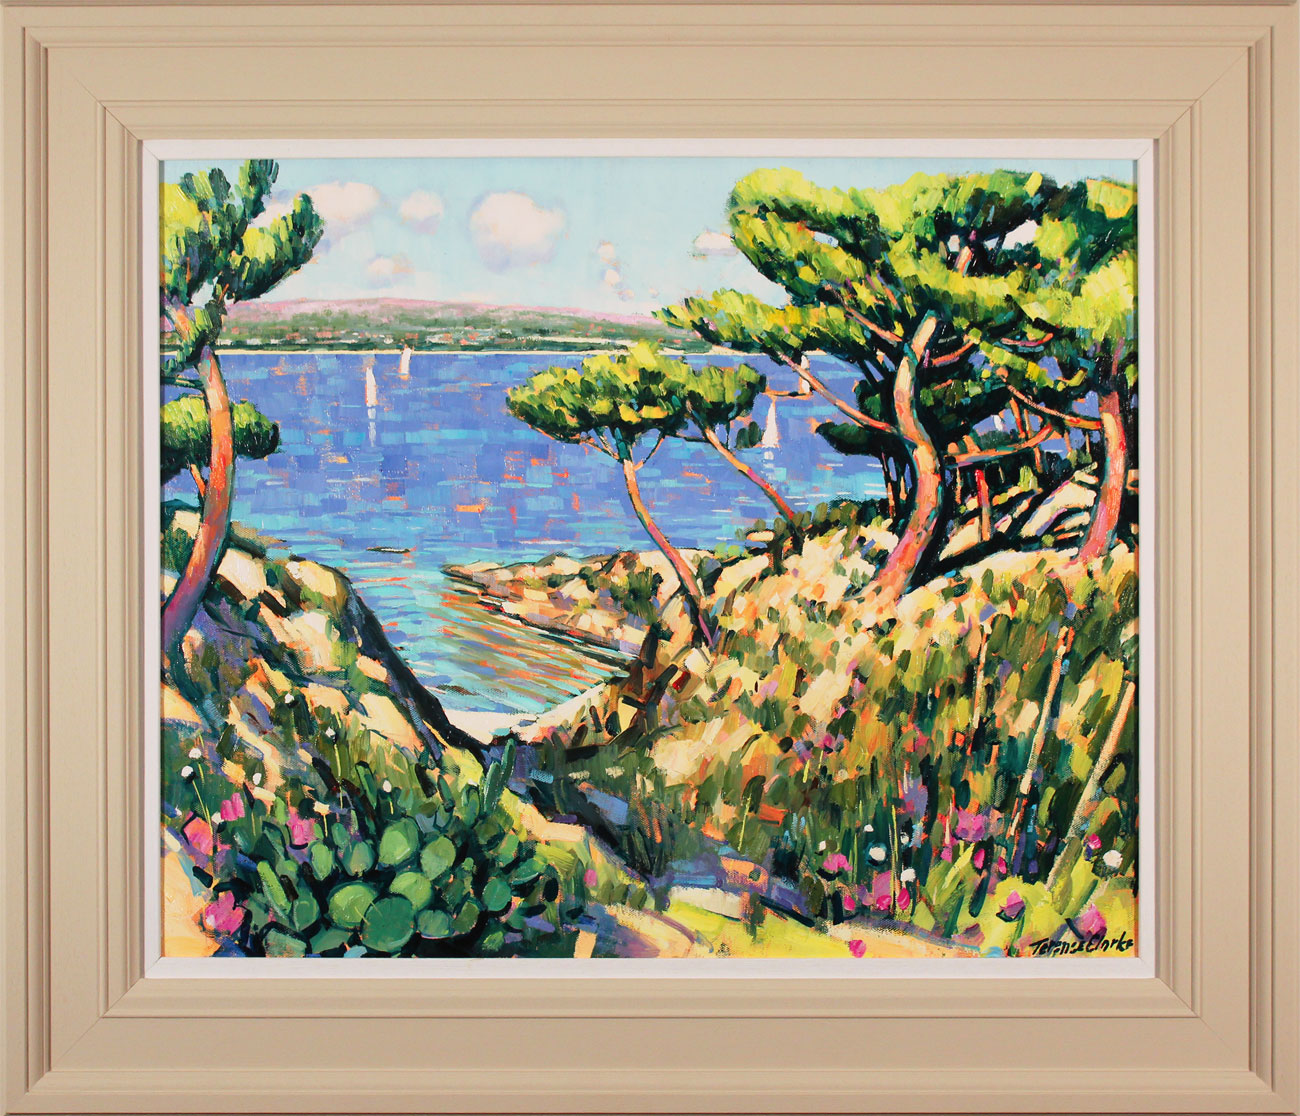 Terence Clarke, Original oil painting on canvas, Island Pines near La Ciotat. Click to enlarge